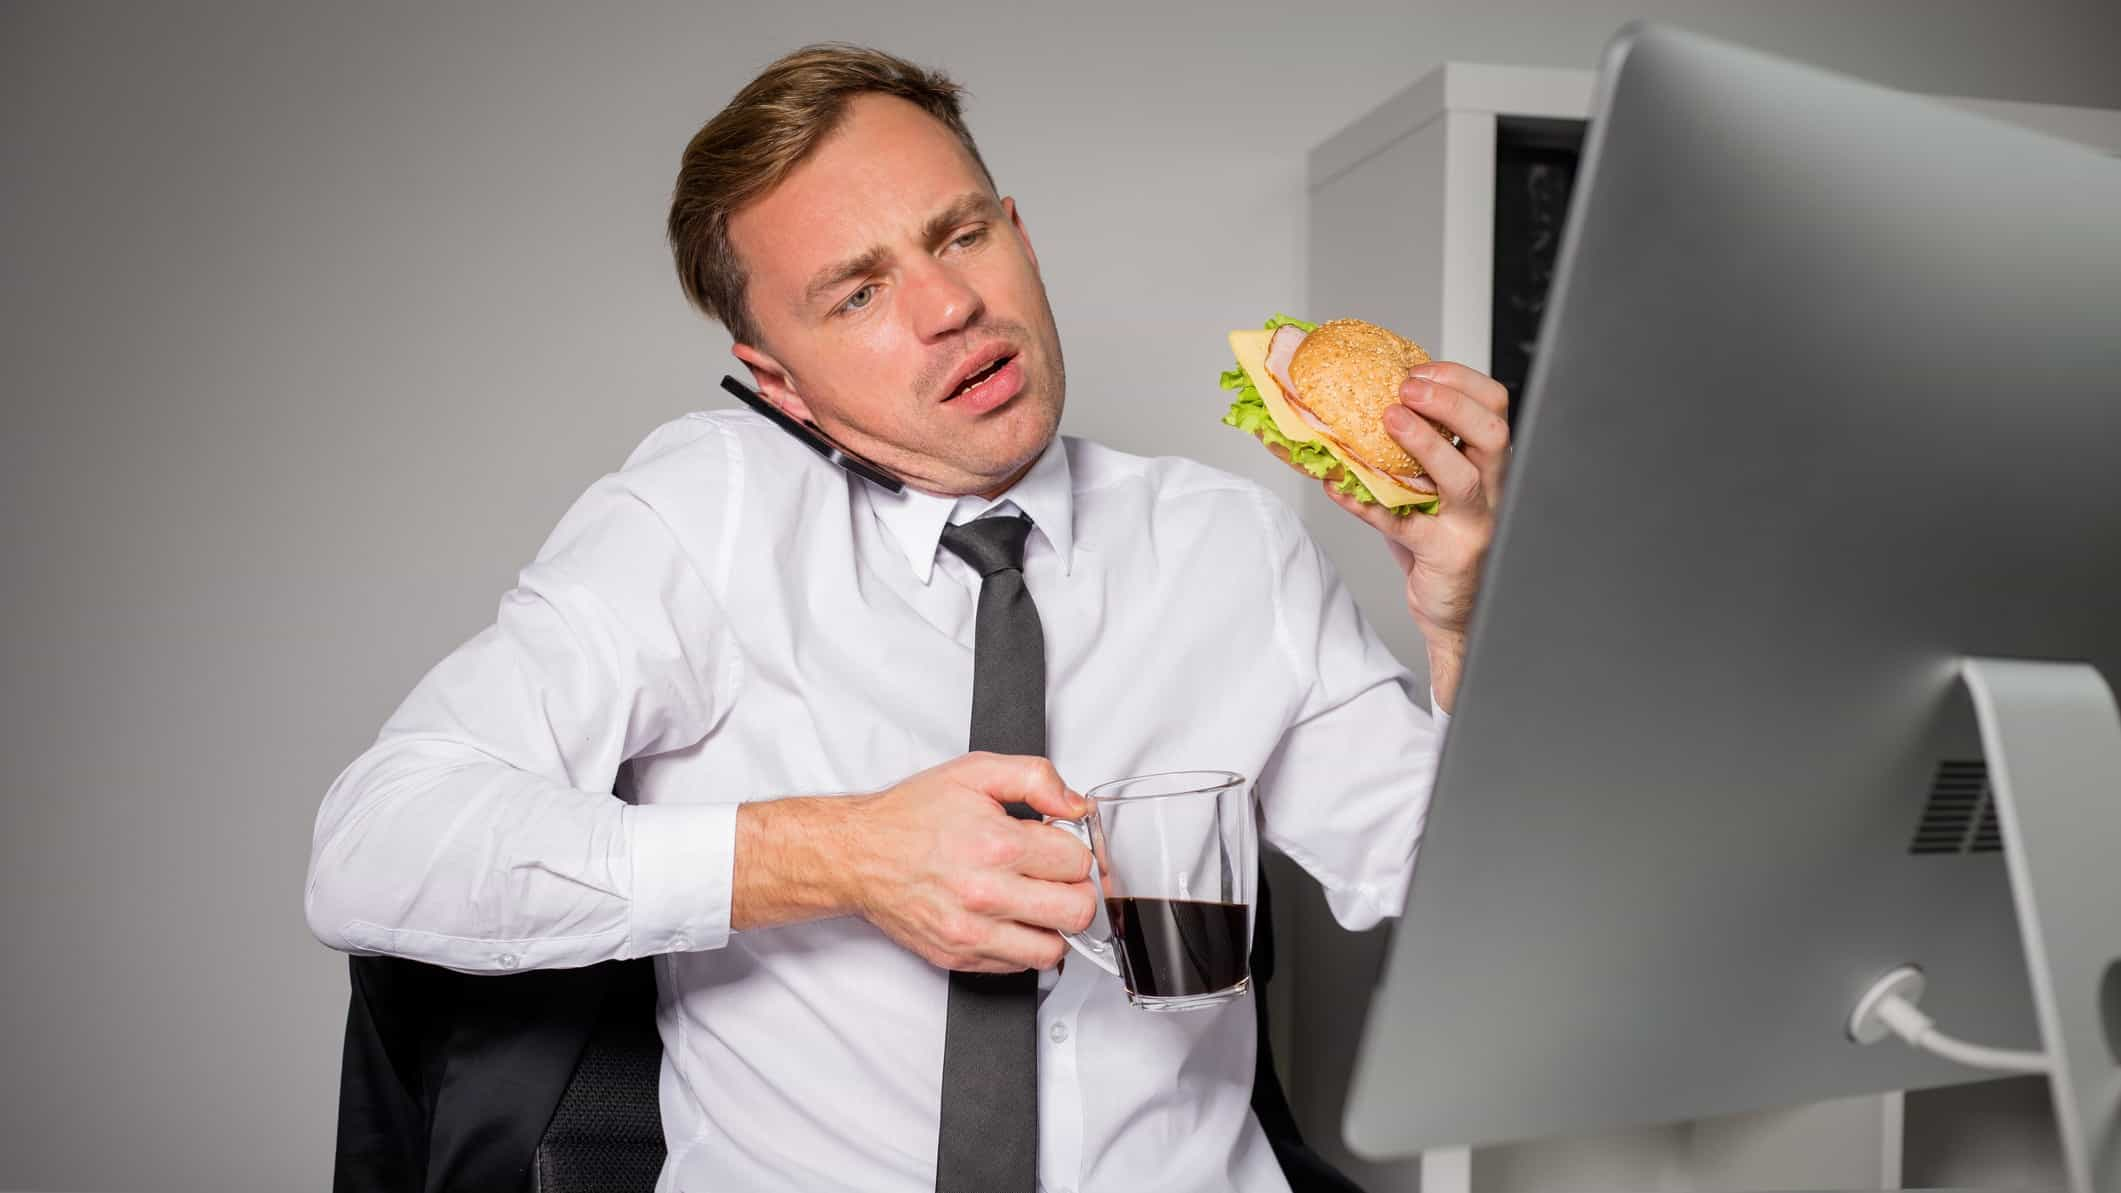 Financial advisor on phone and looking at computer whilst eating and holding coffee